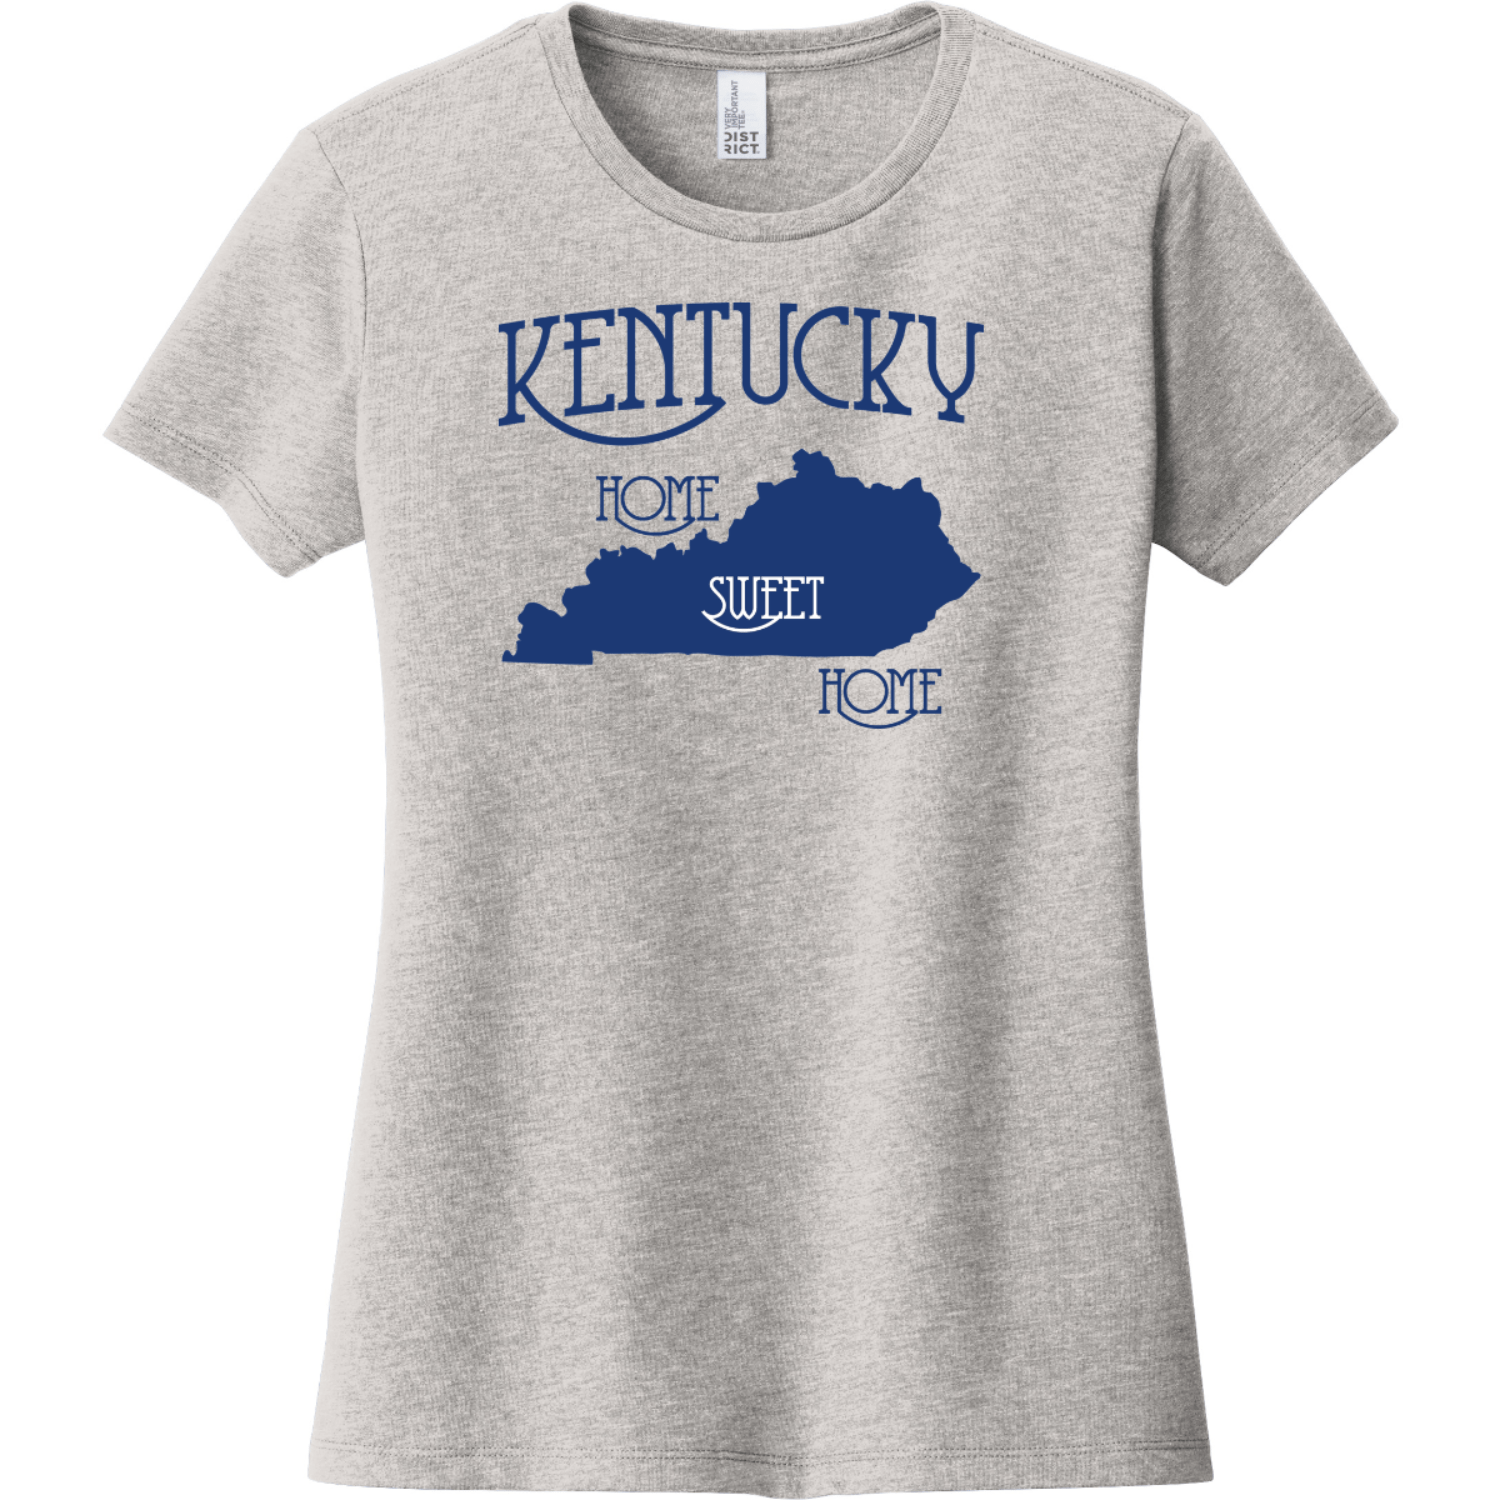 Kentucky Country Home Sweet Home T-Shirt Light Heather Gray District Women's Very Important Tee DT6002